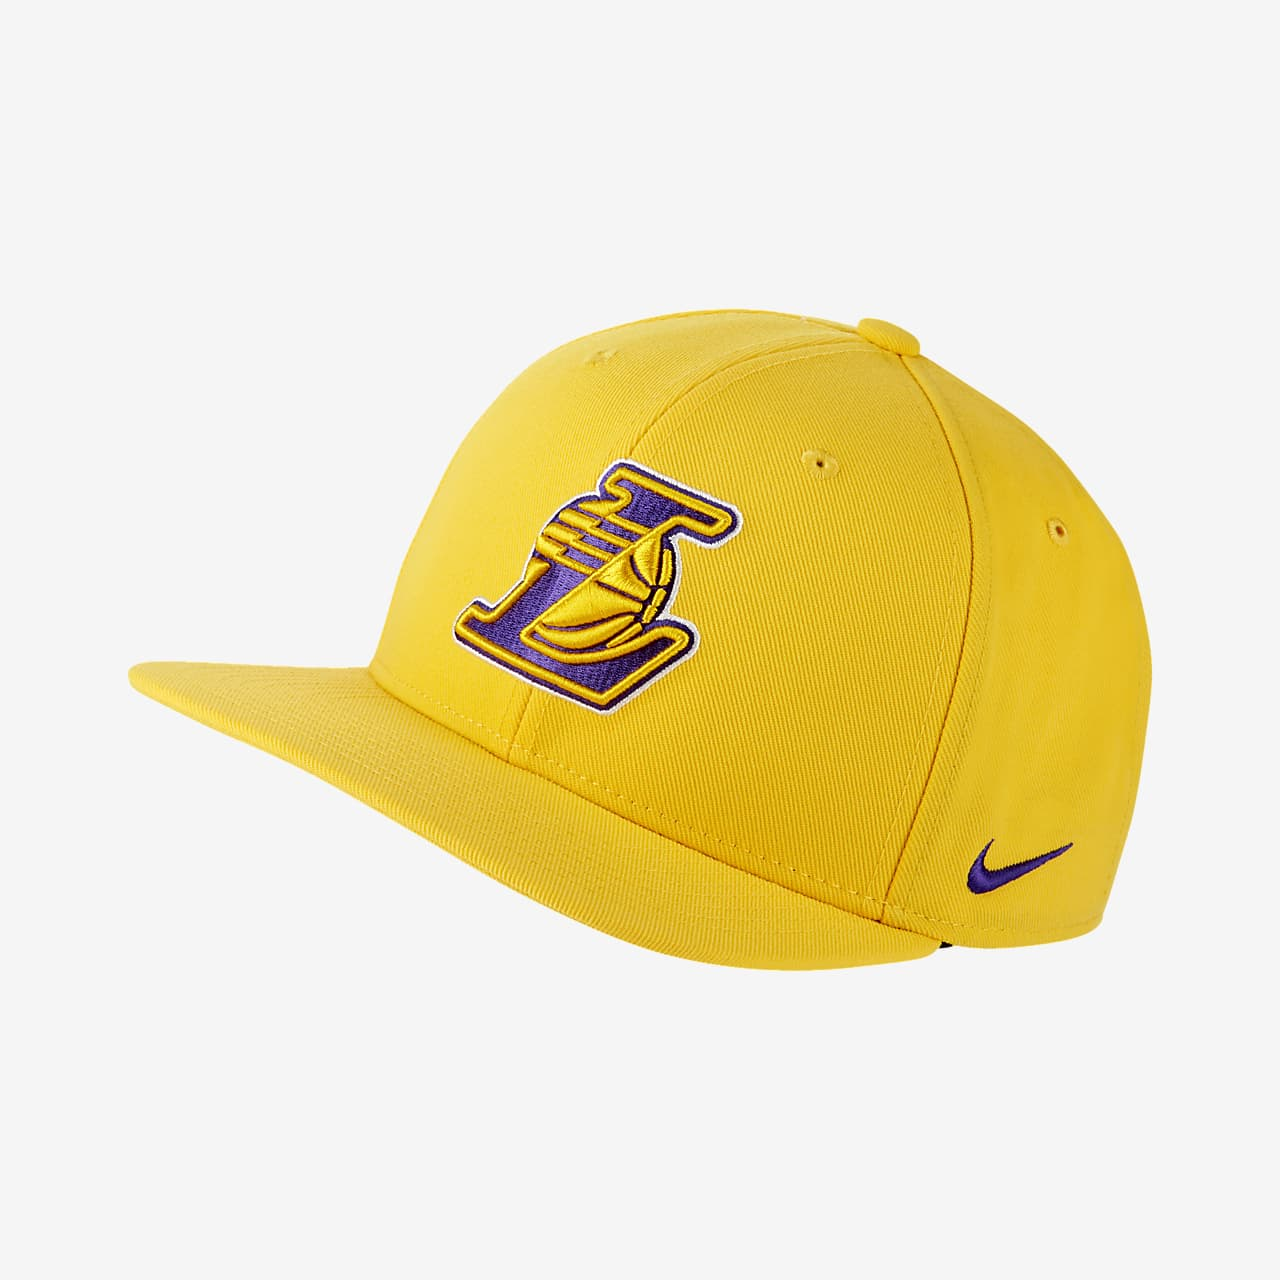 Los Angeles Lakers Nike Pro NBA Cap